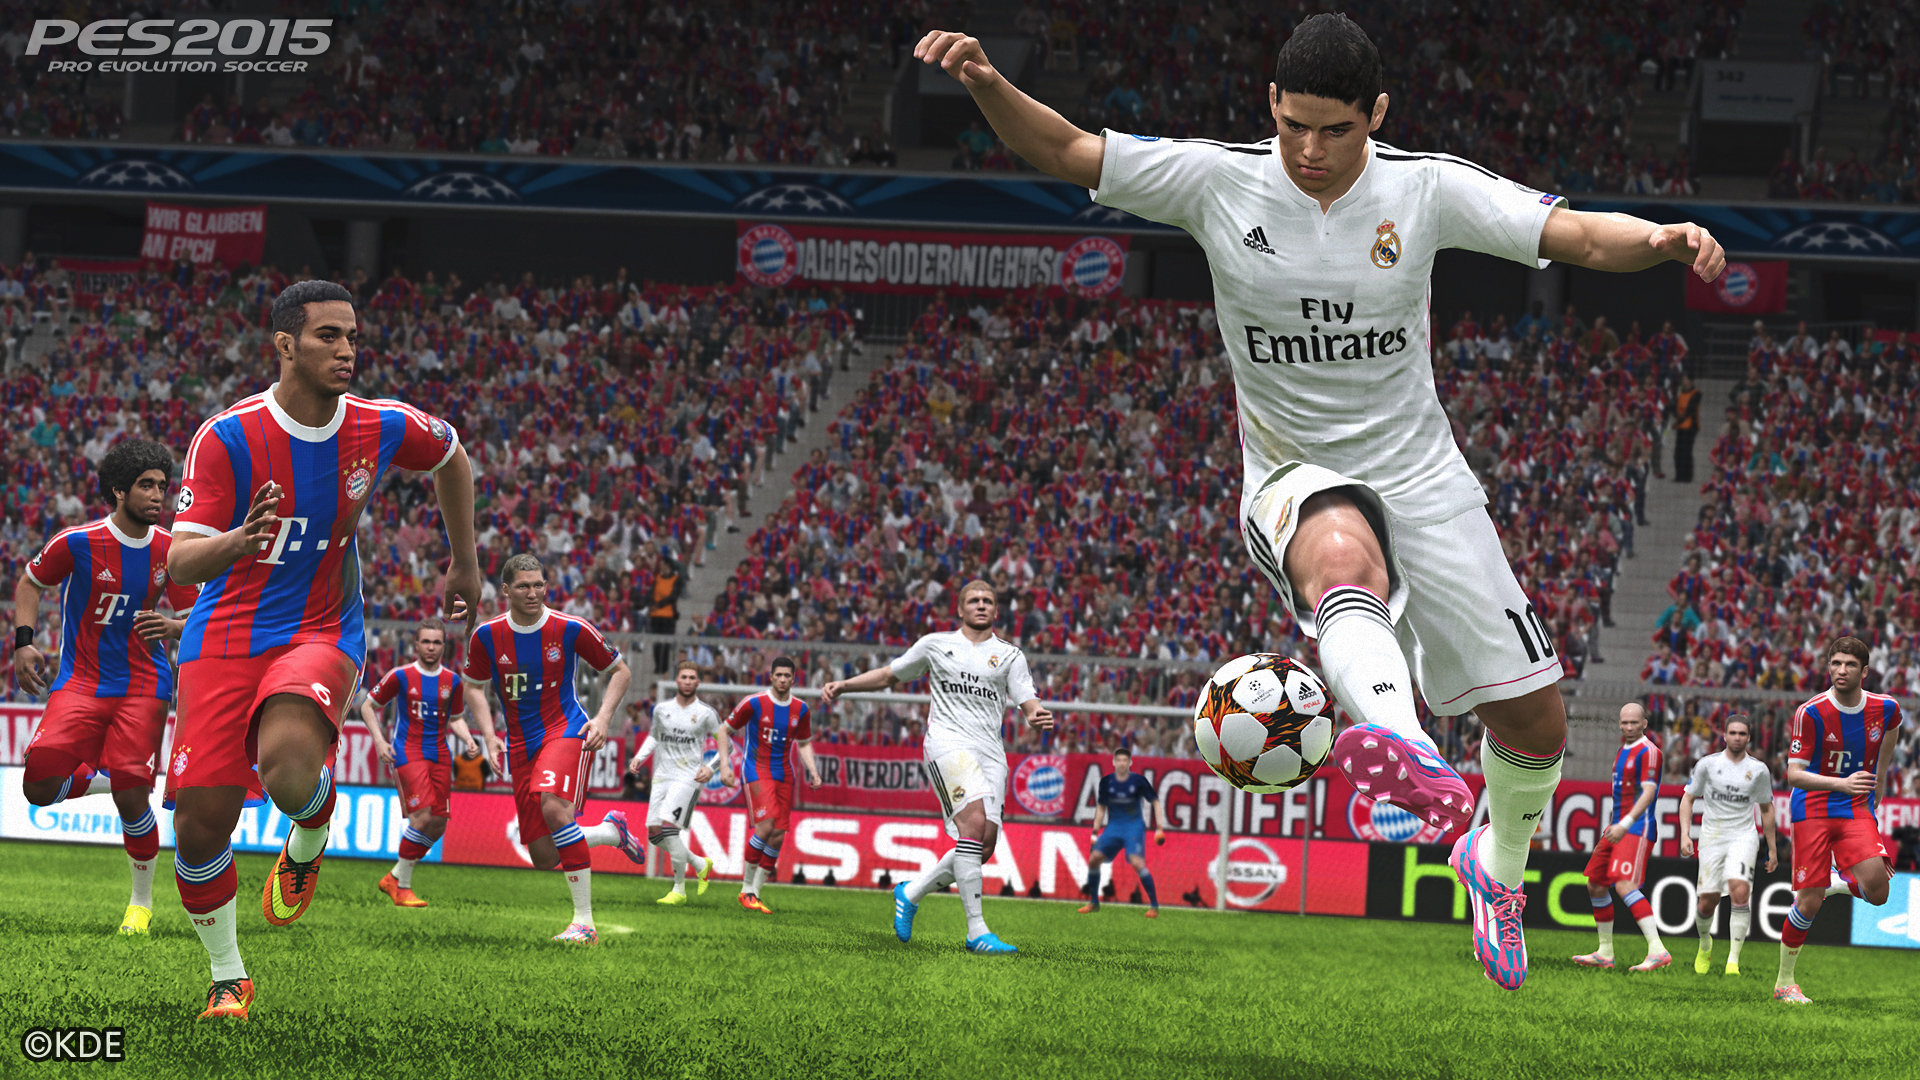 Quick look: pro evolution soccer 2015 demo – video and gallery.